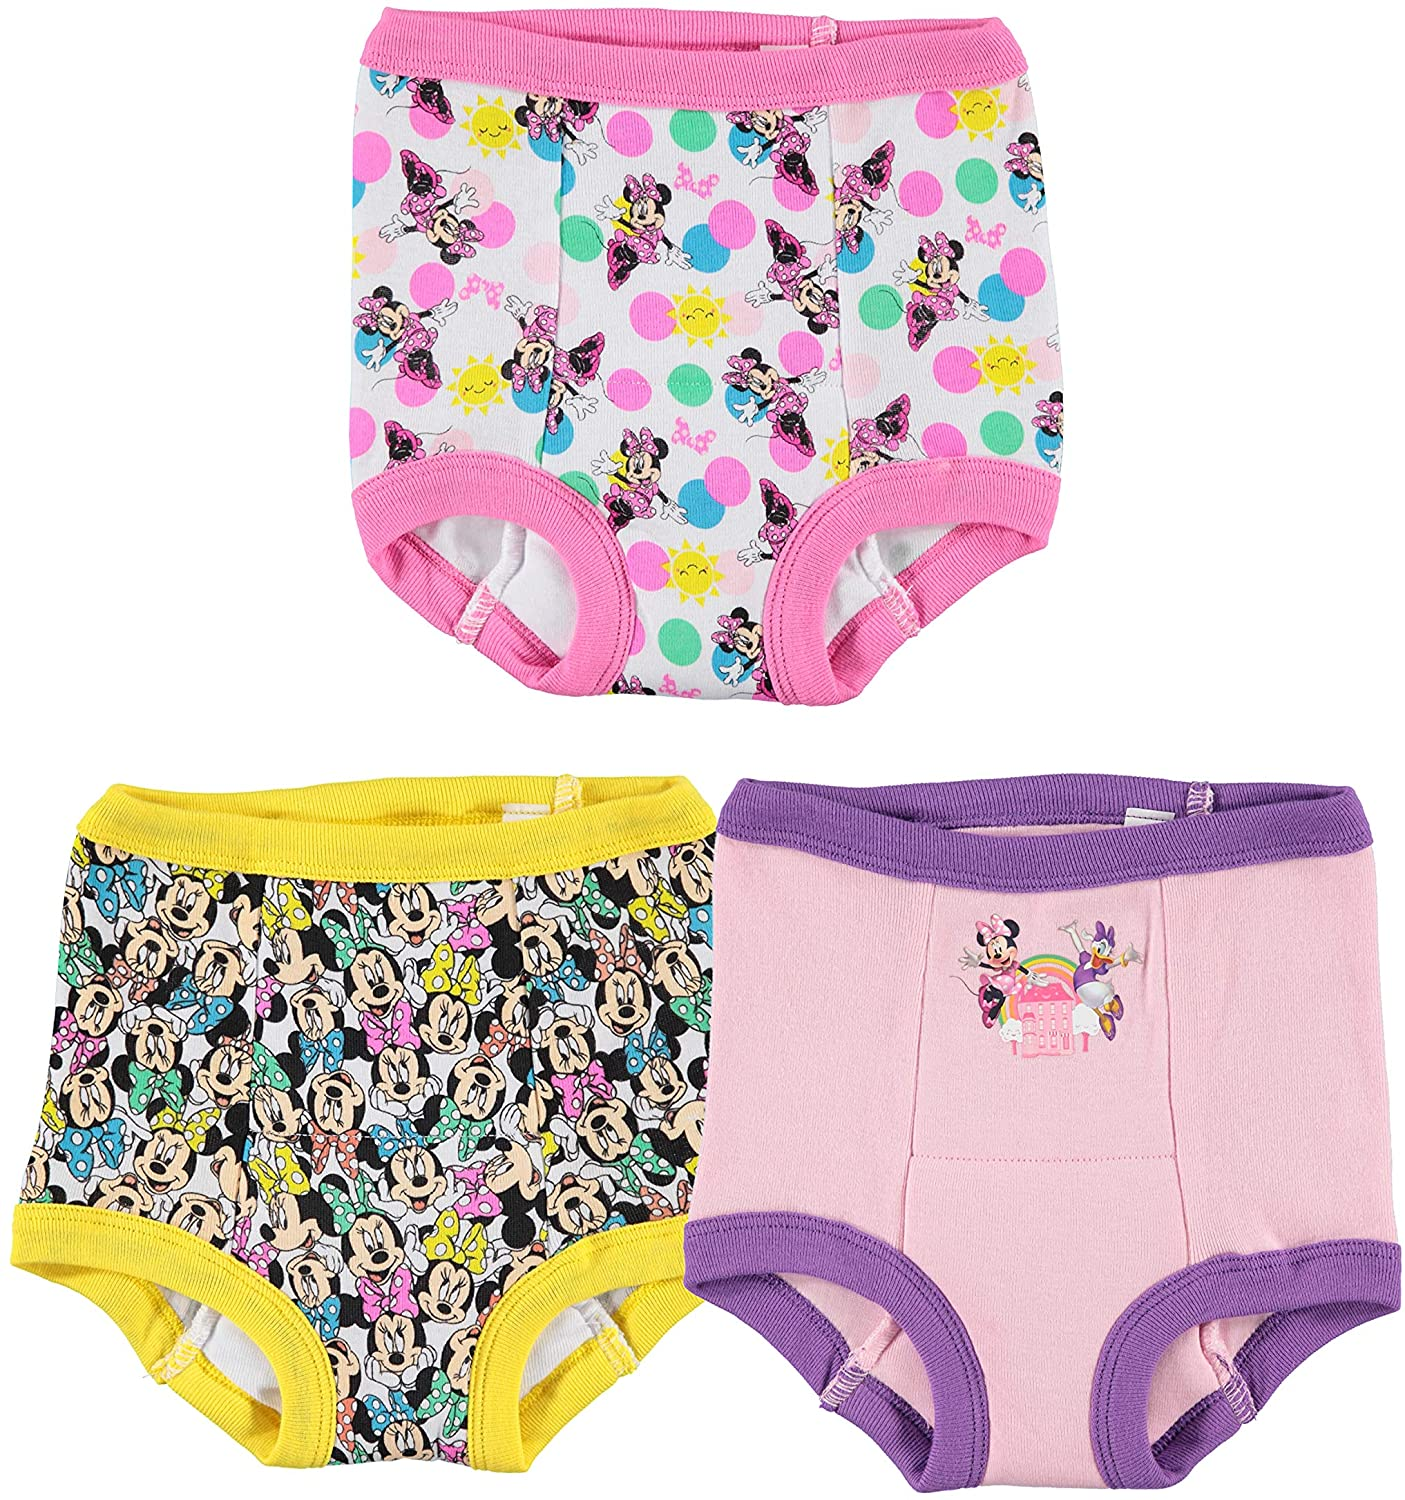 Disney girls Minnie Mouse Potty Training Pants Multipack